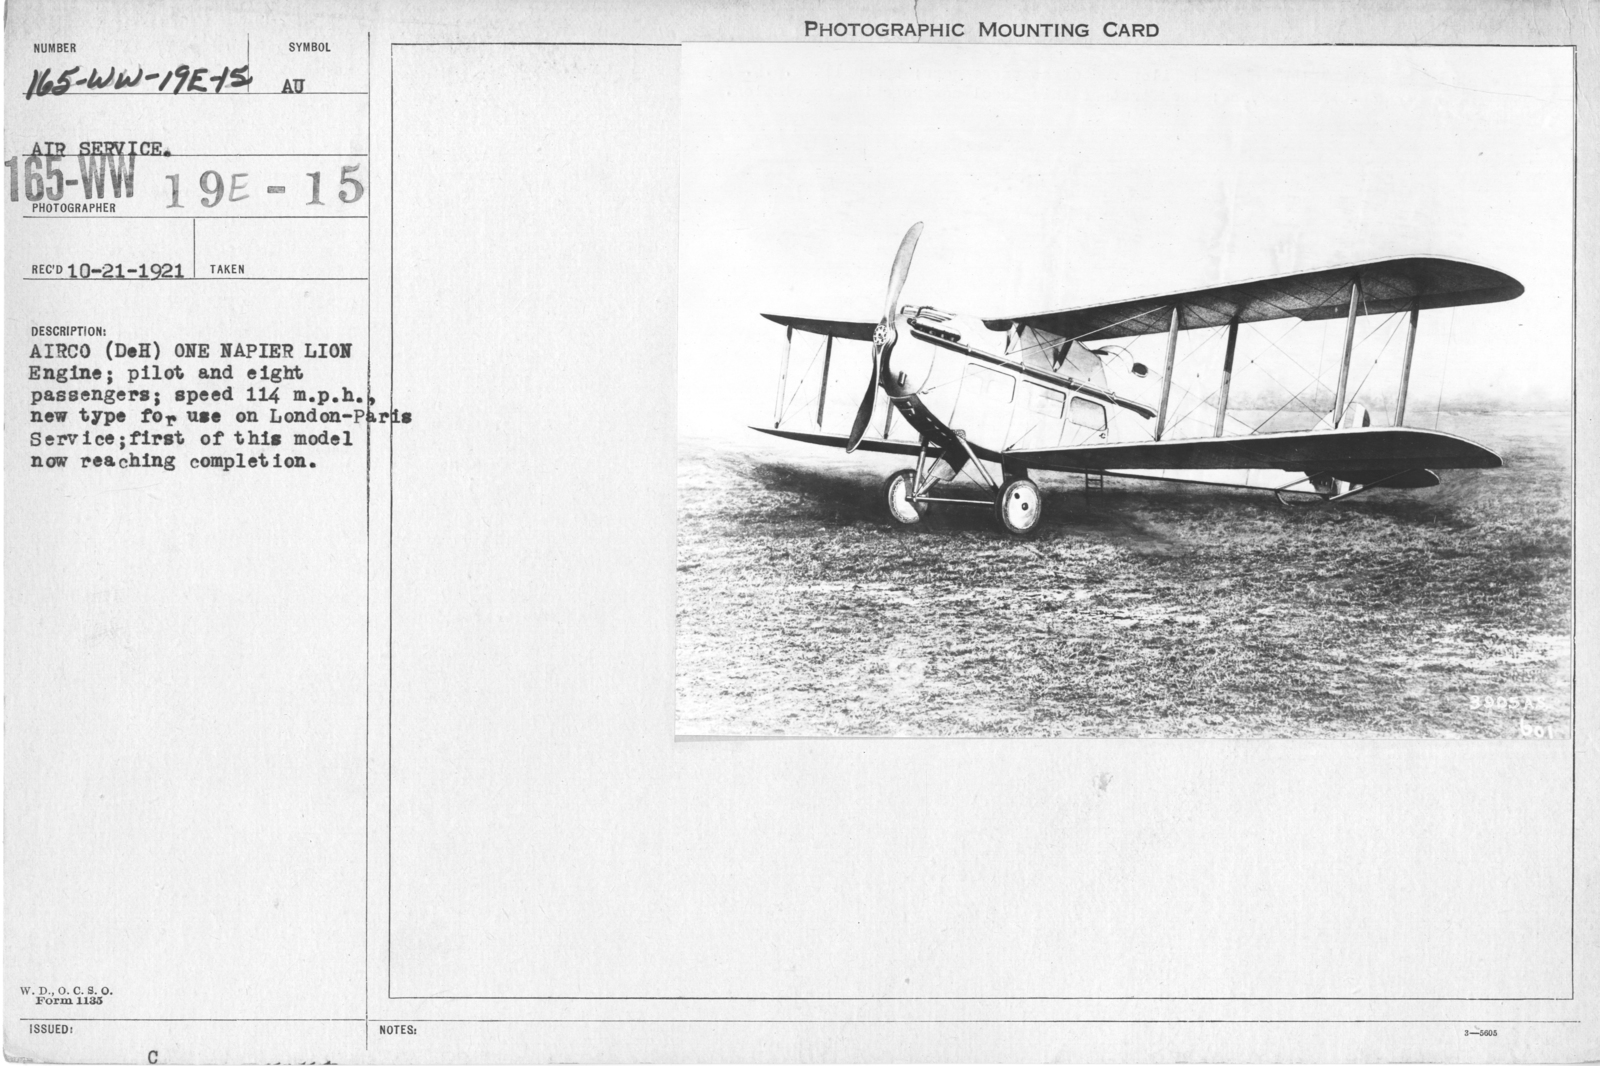 Airplanes - Types - Airco (DeH) one Napier Lion Engine; pilot and eight passengers; speed 114 m.p.h., new type for use on London-Paris Service, first of this model now reaching completion. Air Service